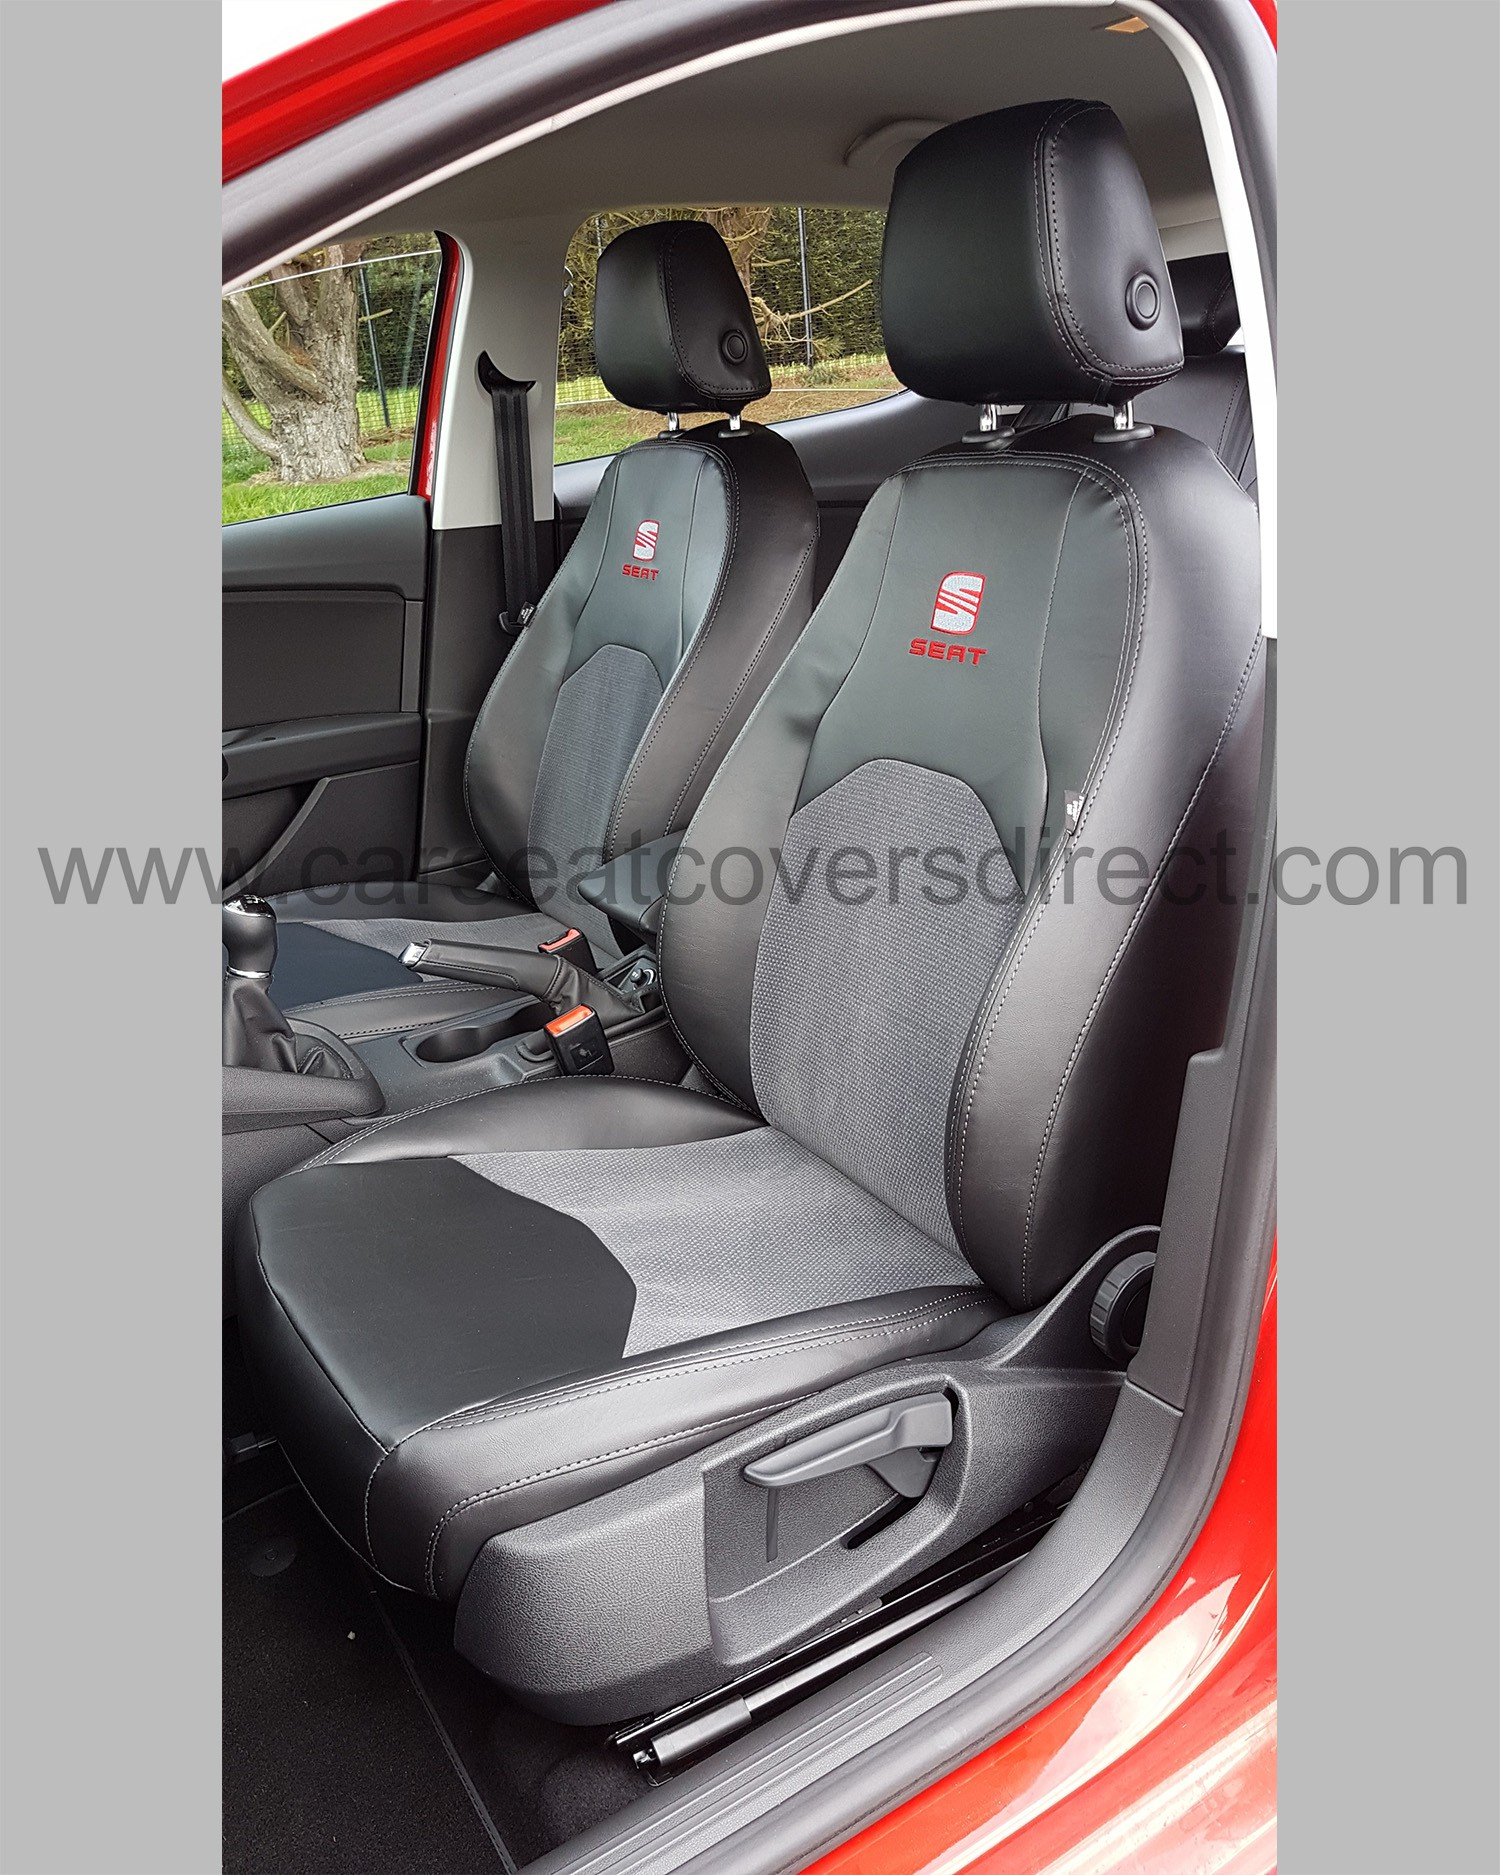 SEAT Leon Seat Covers - Black with Cloth Centres Car Seat Covers Direct - Tailored To Your Choice